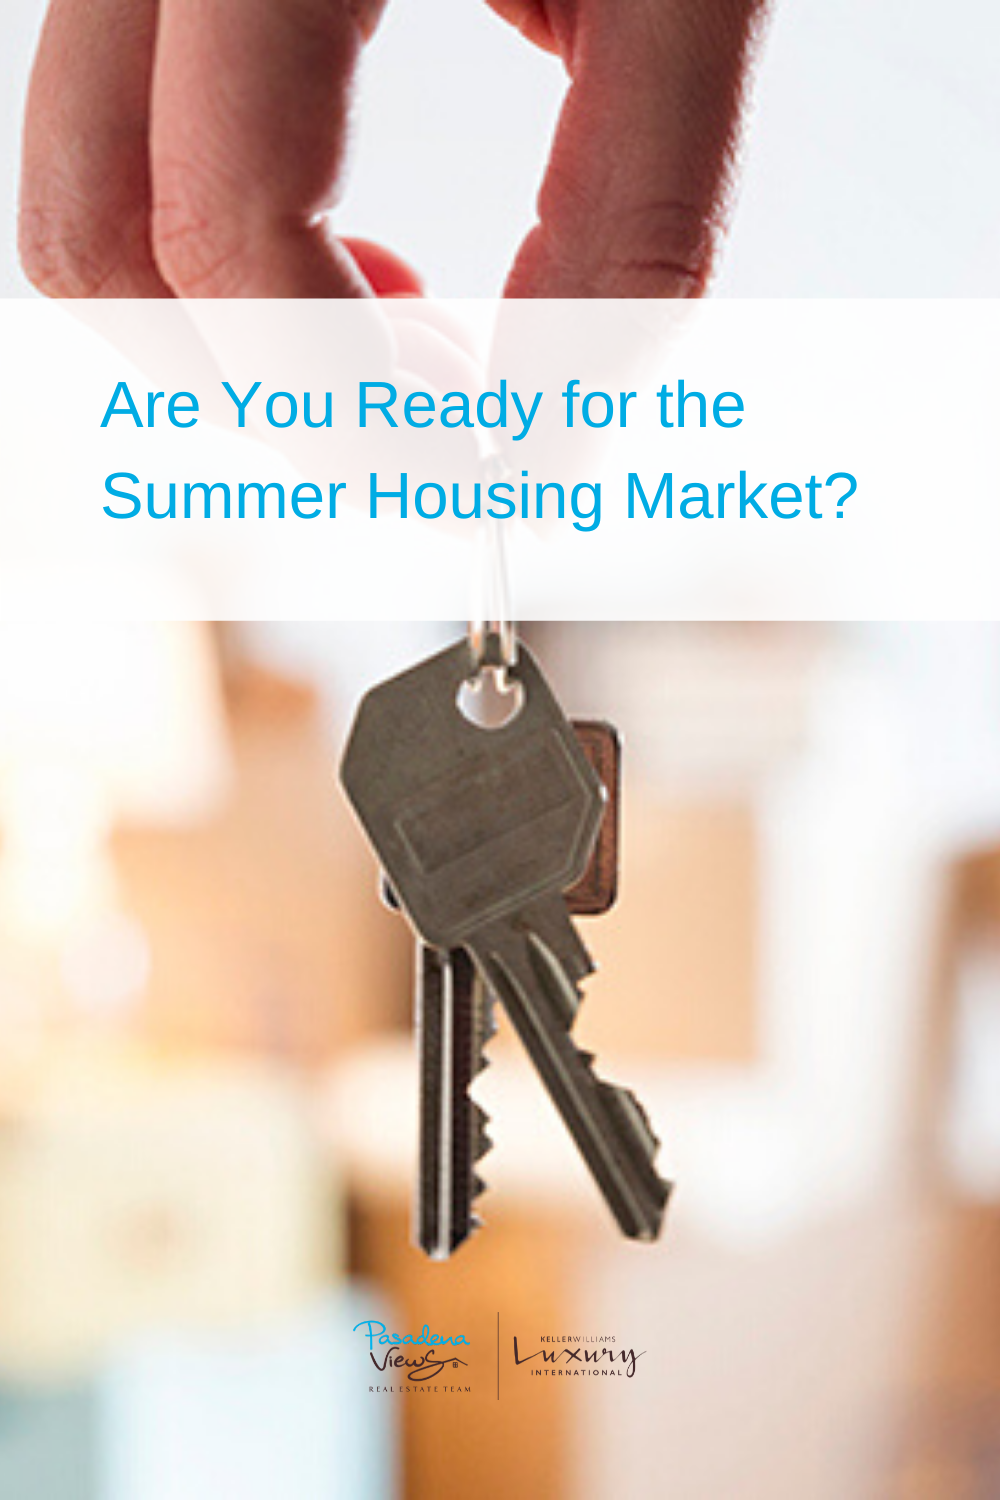 Are You Ready for the Summer Housing Market? in 2020